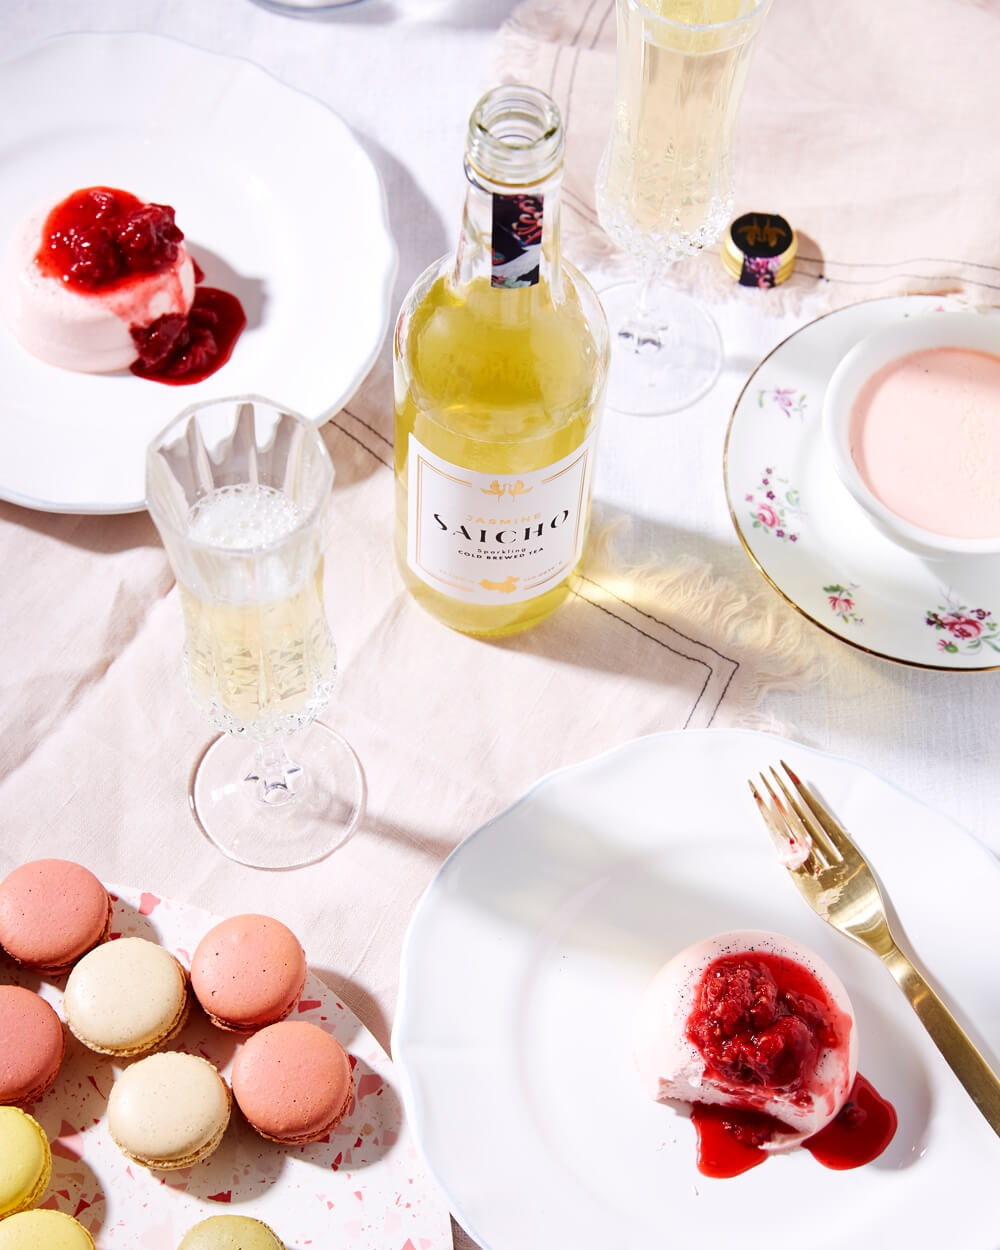 Saicho Jasmine sparkling tea paired with panna cotta and macarons